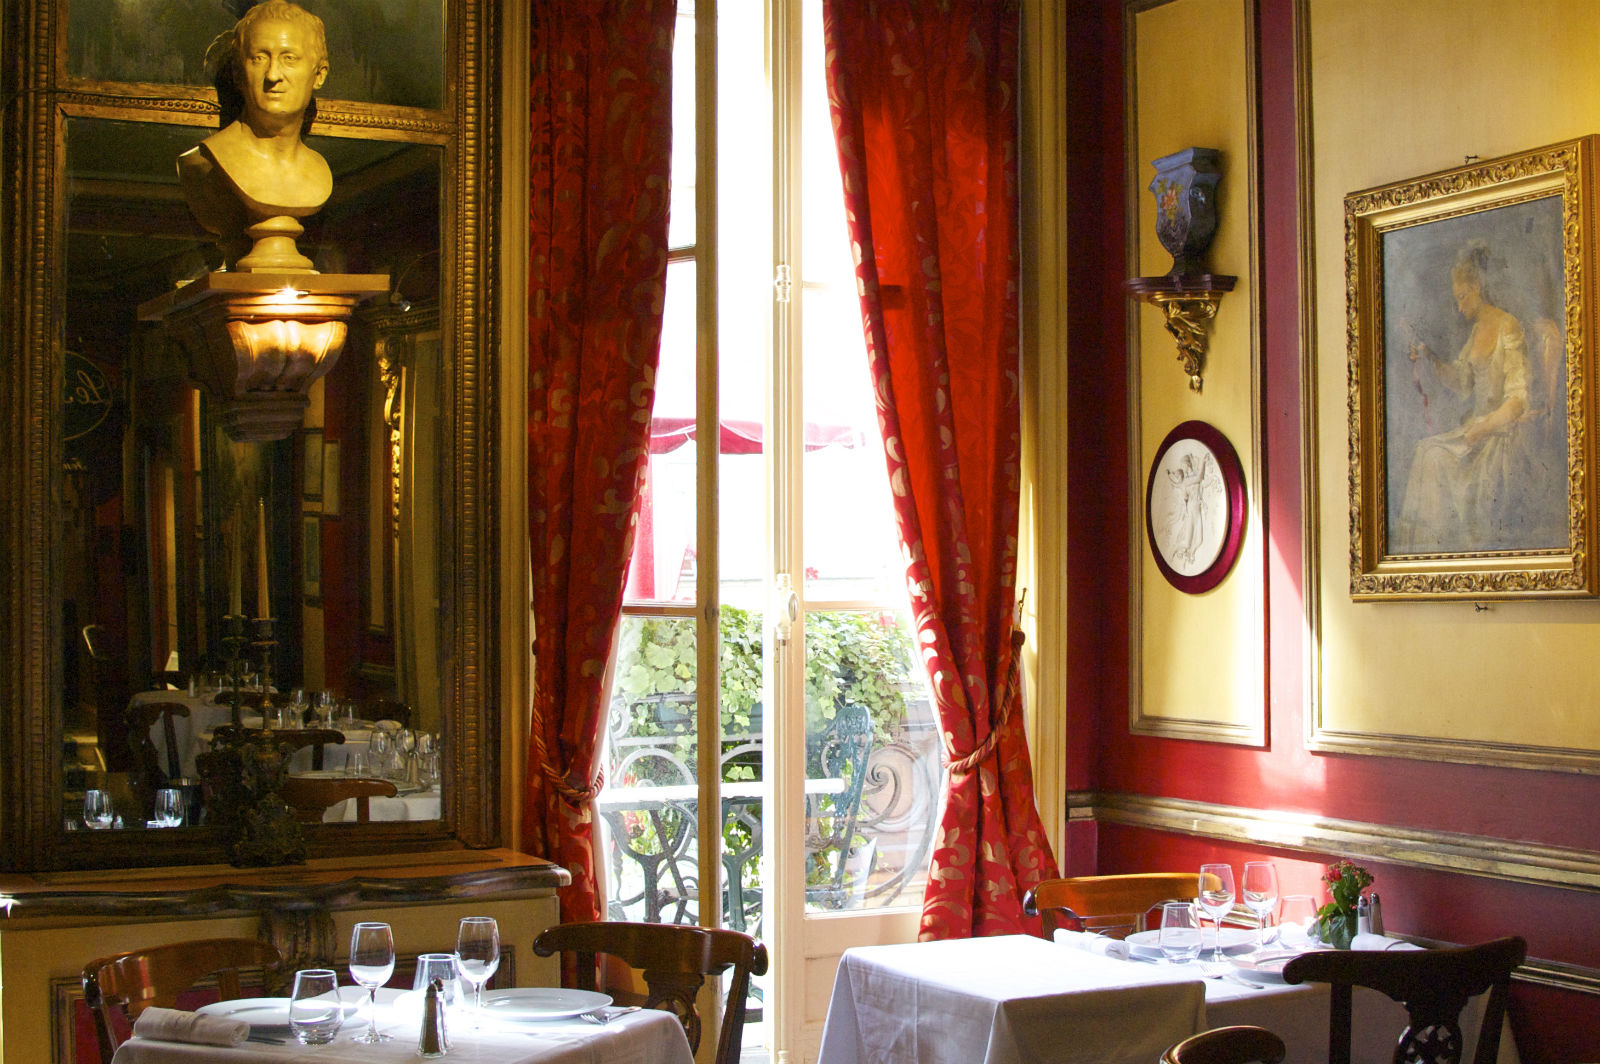 HiP Paris blog. A Paris dining experience with a side of French history at Le Procope. Look out the window on Paris of the present from Paris of the past.